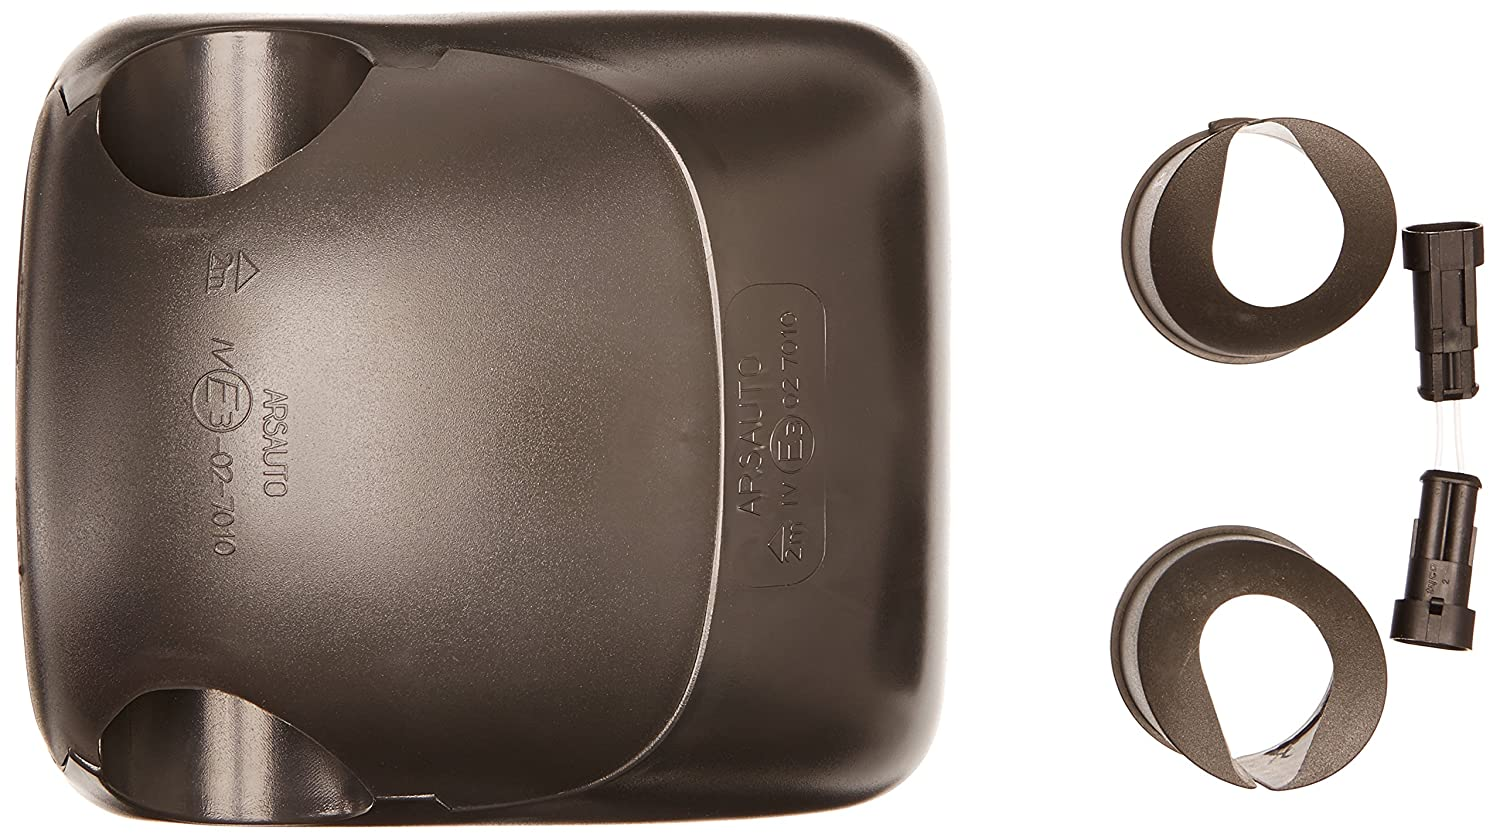 Melchioni 331050956/Rearview for Car